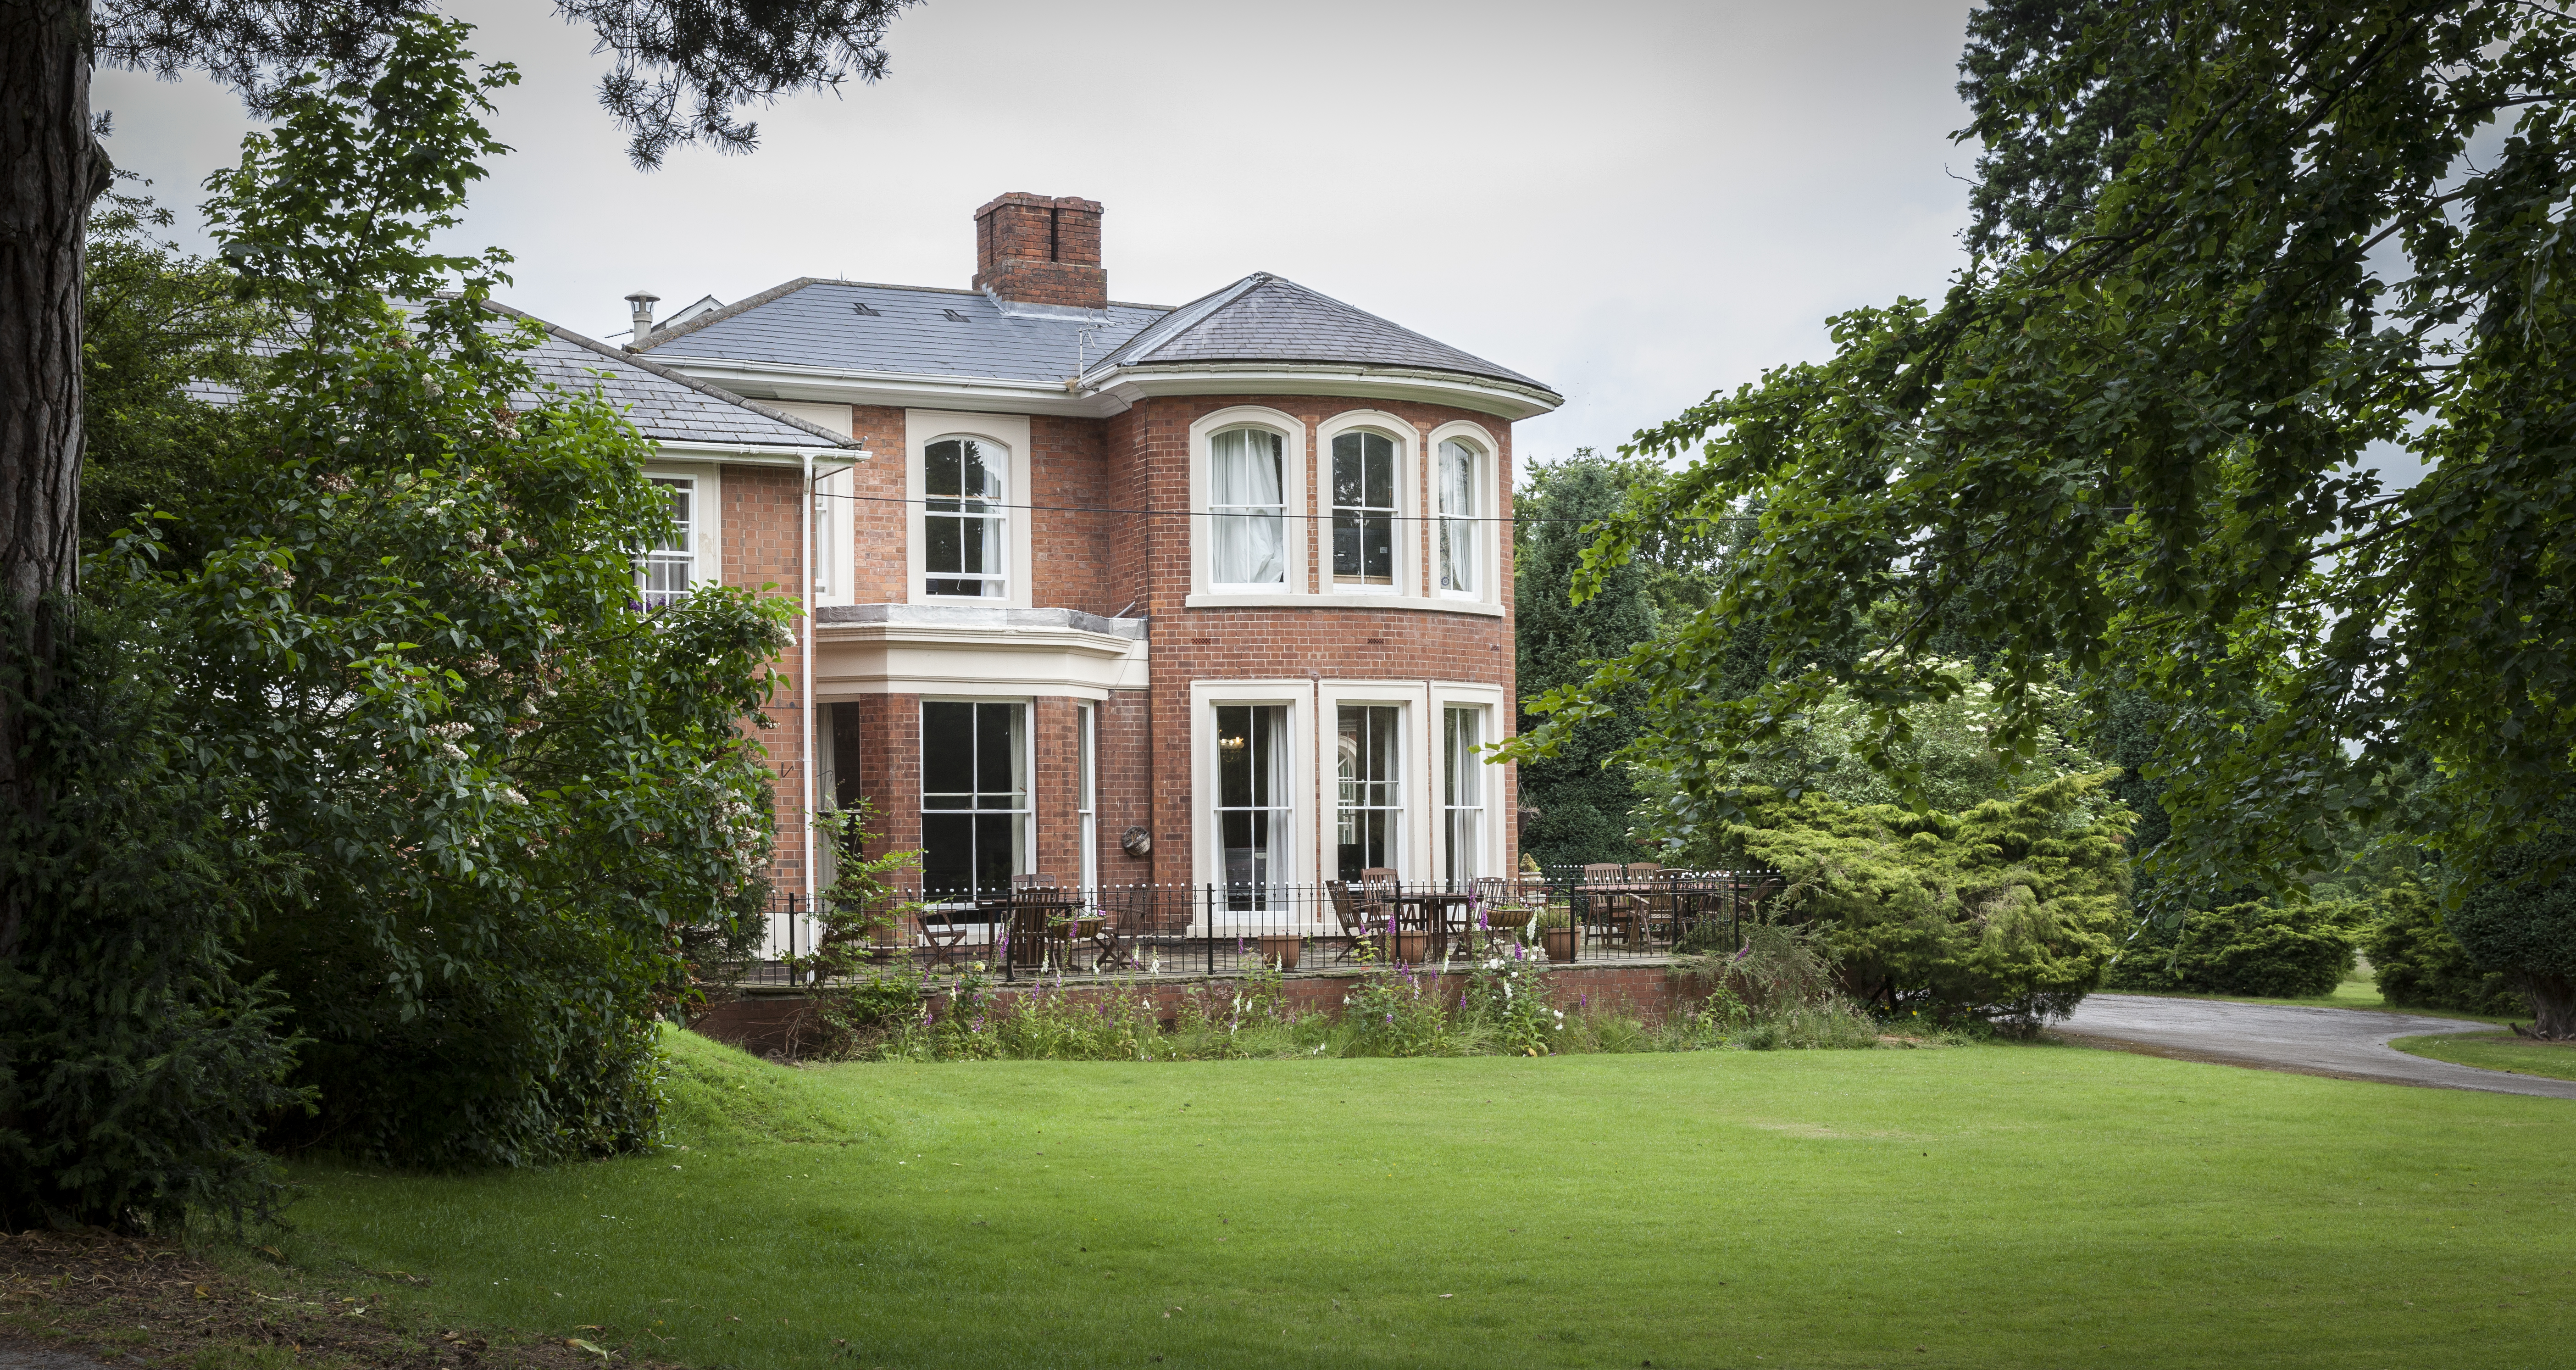 037bcd5b432 Springfield House Care Home: Codsall, Staffordshire: Residential, Nursing,  Palliative, and Respite Care